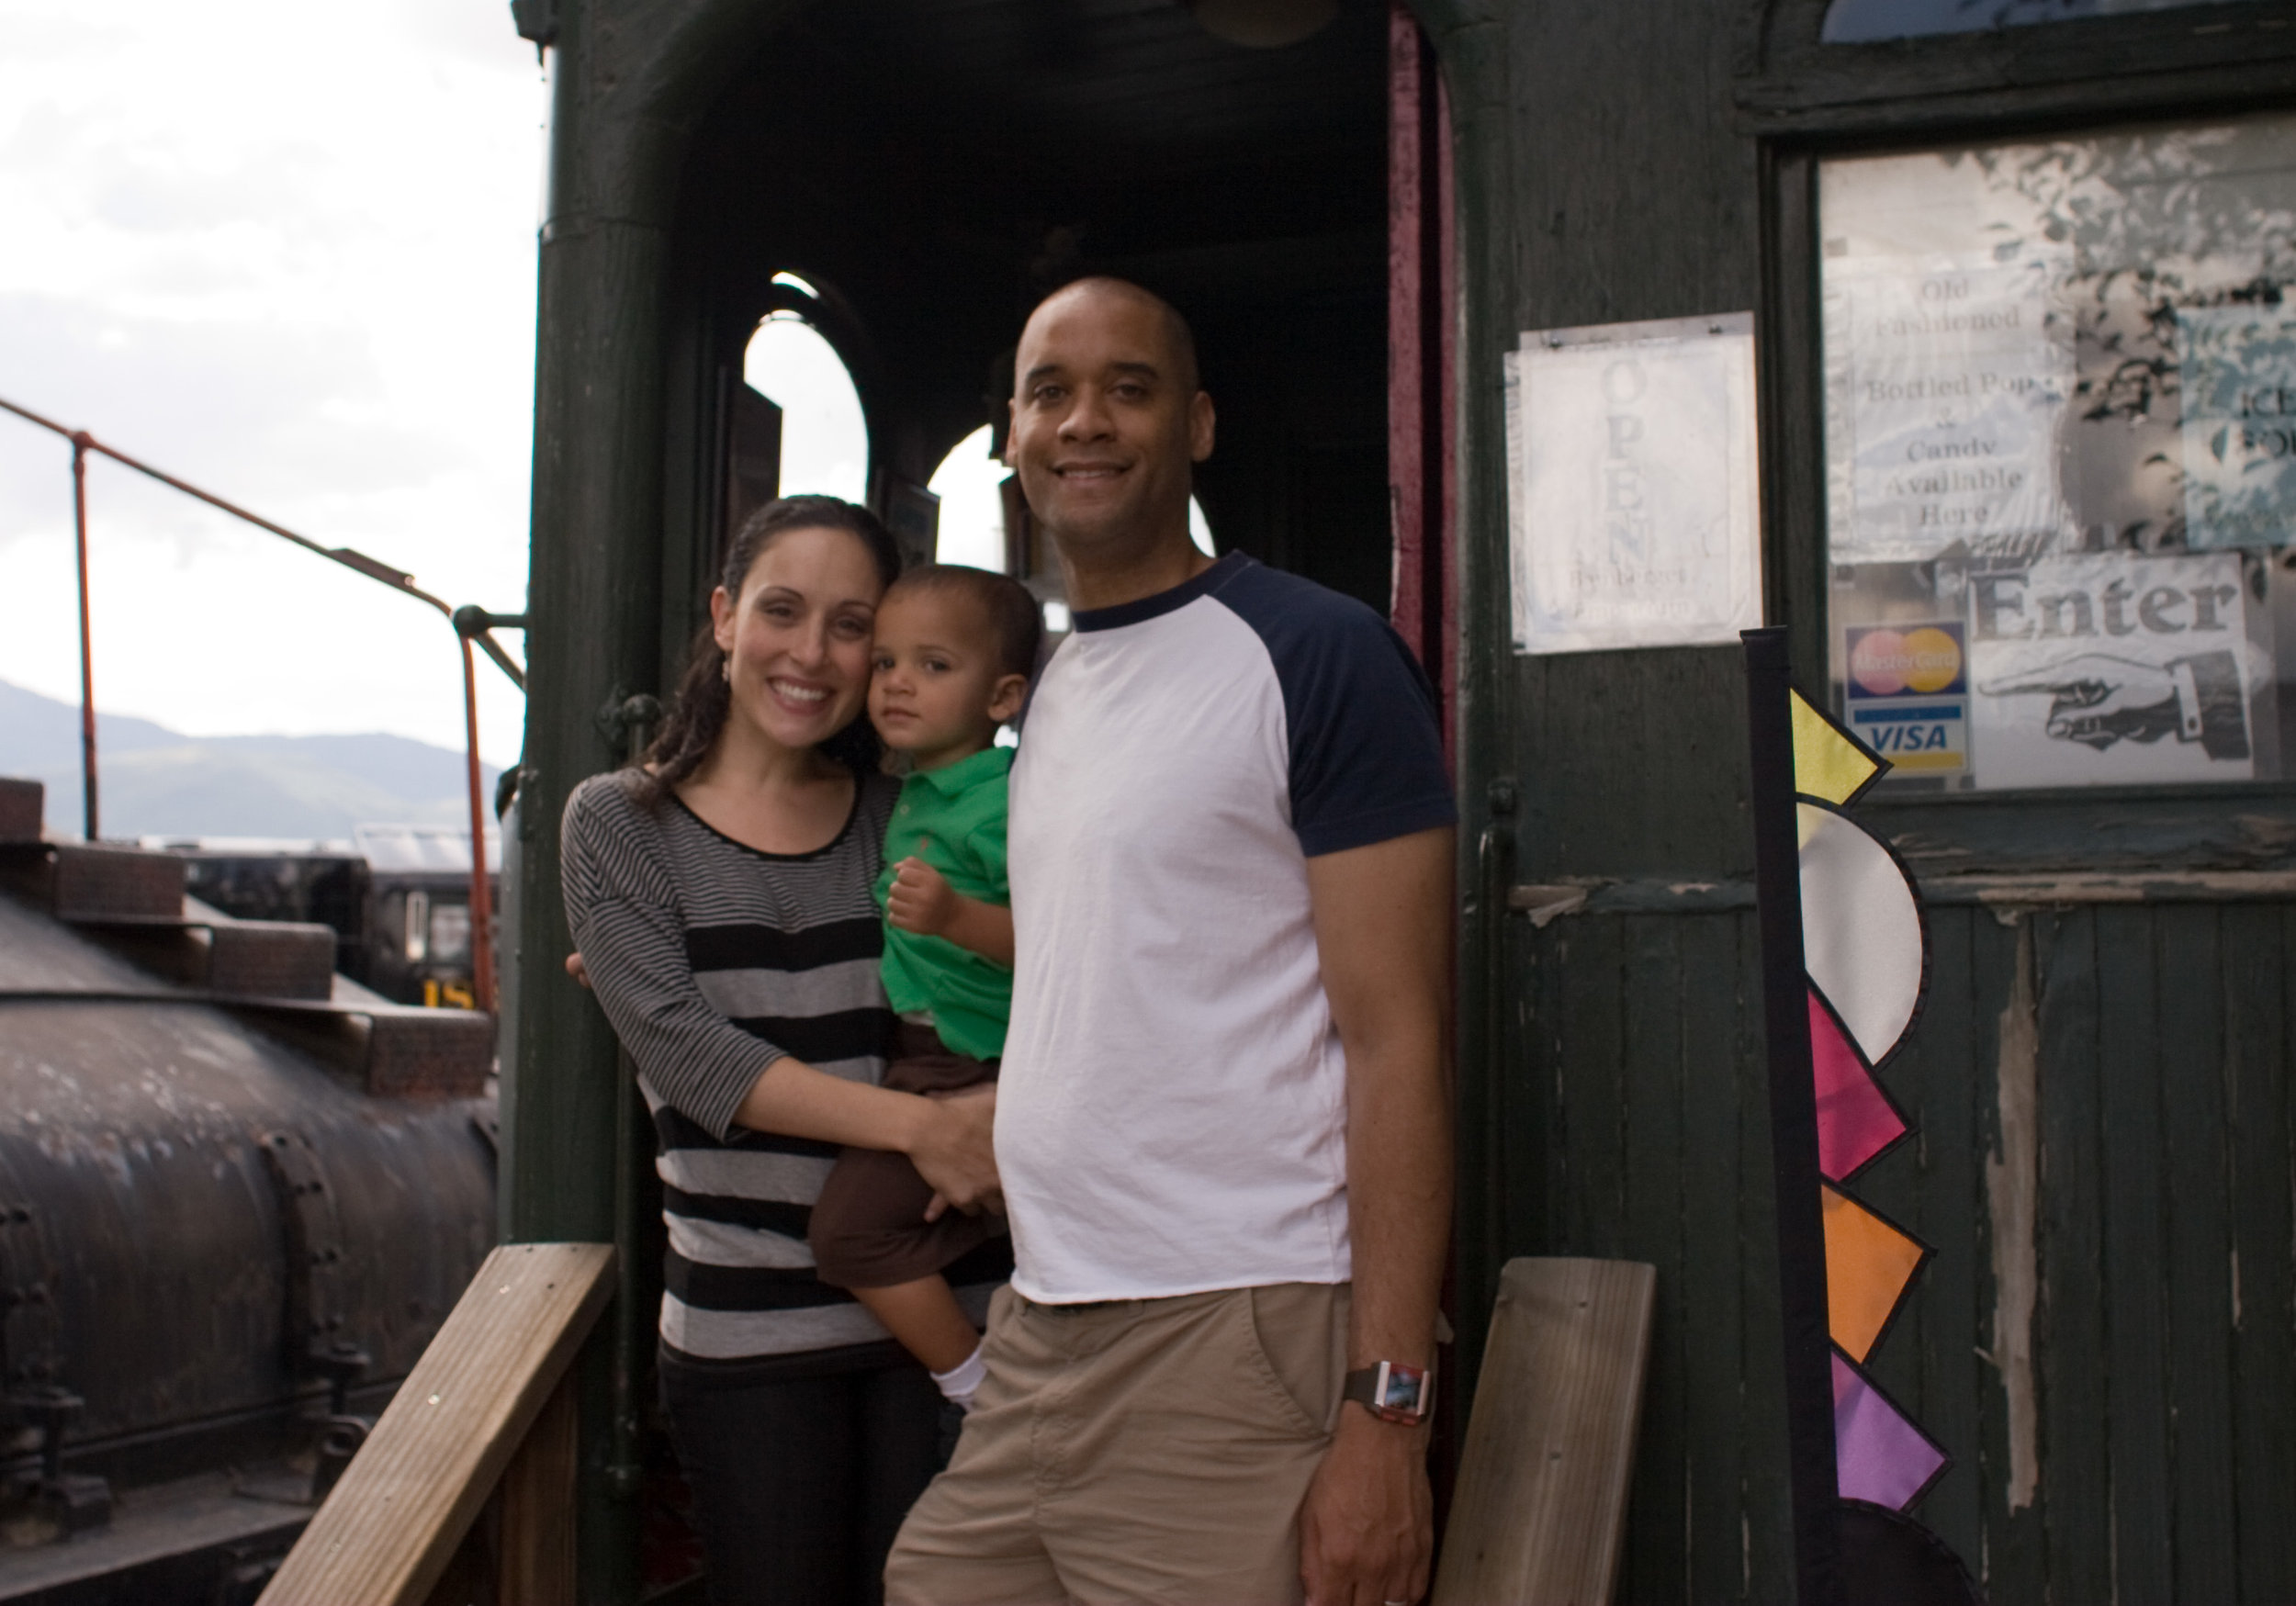 Visiting yet another train in the Heber Valley, Utah, 2009, or The Work I'm Most Proud Of Today